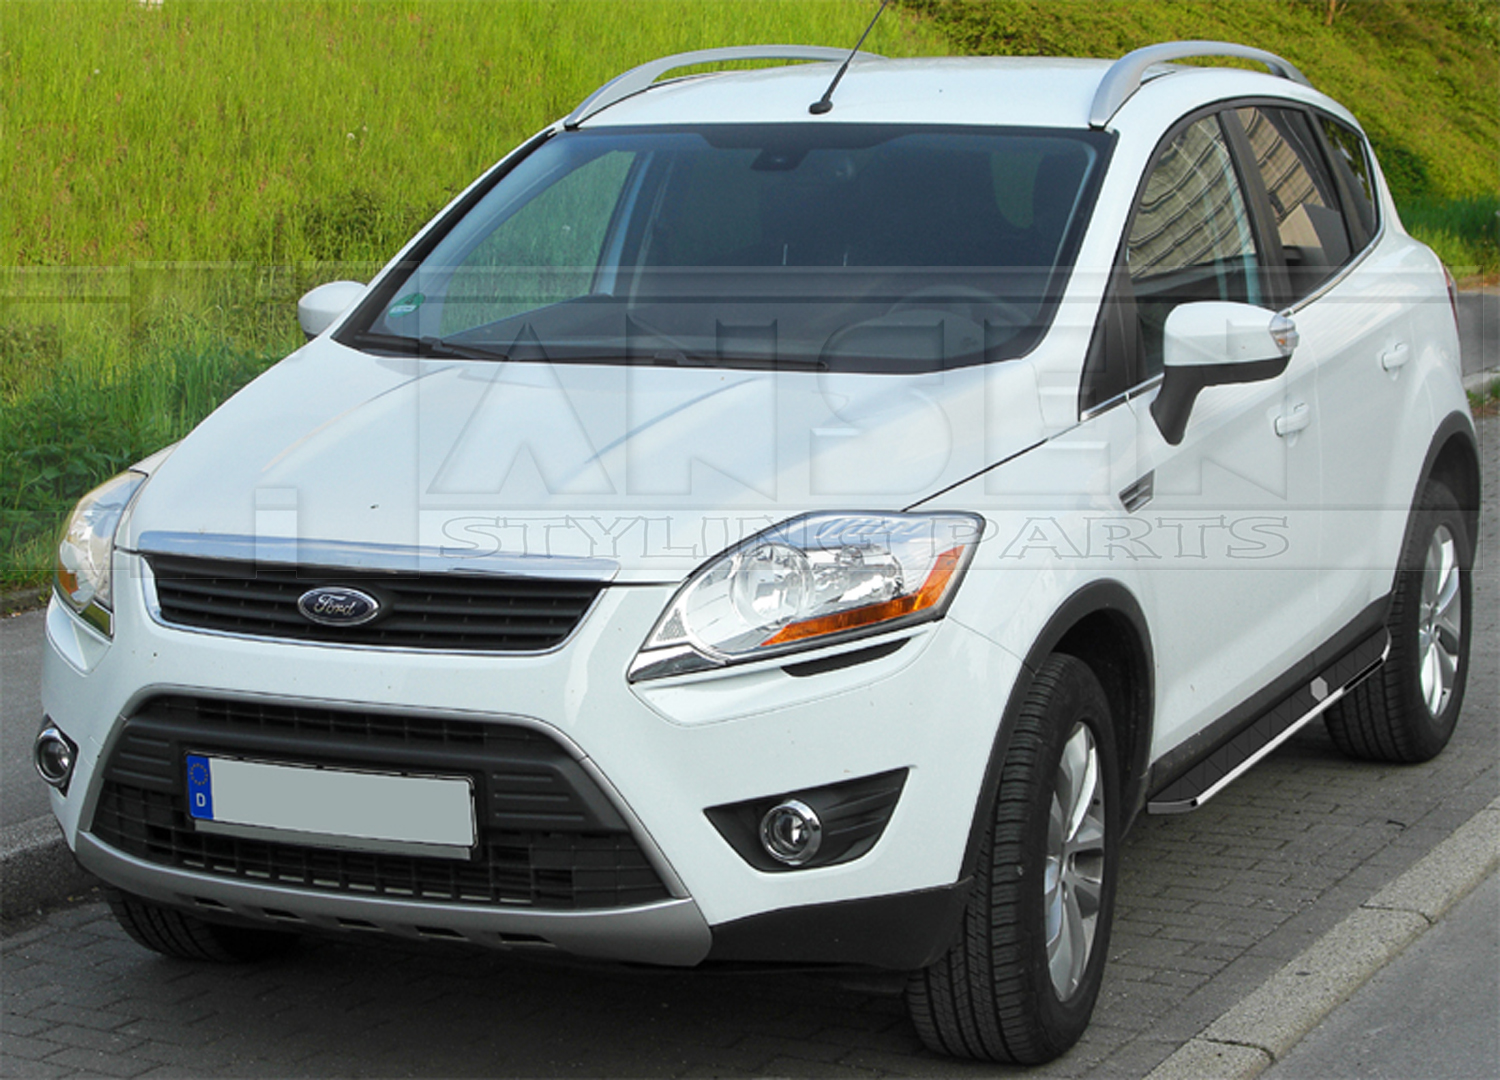 schwellerrohre ford kuga 2013 mit t v running boards. Black Bedroom Furniture Sets. Home Design Ideas